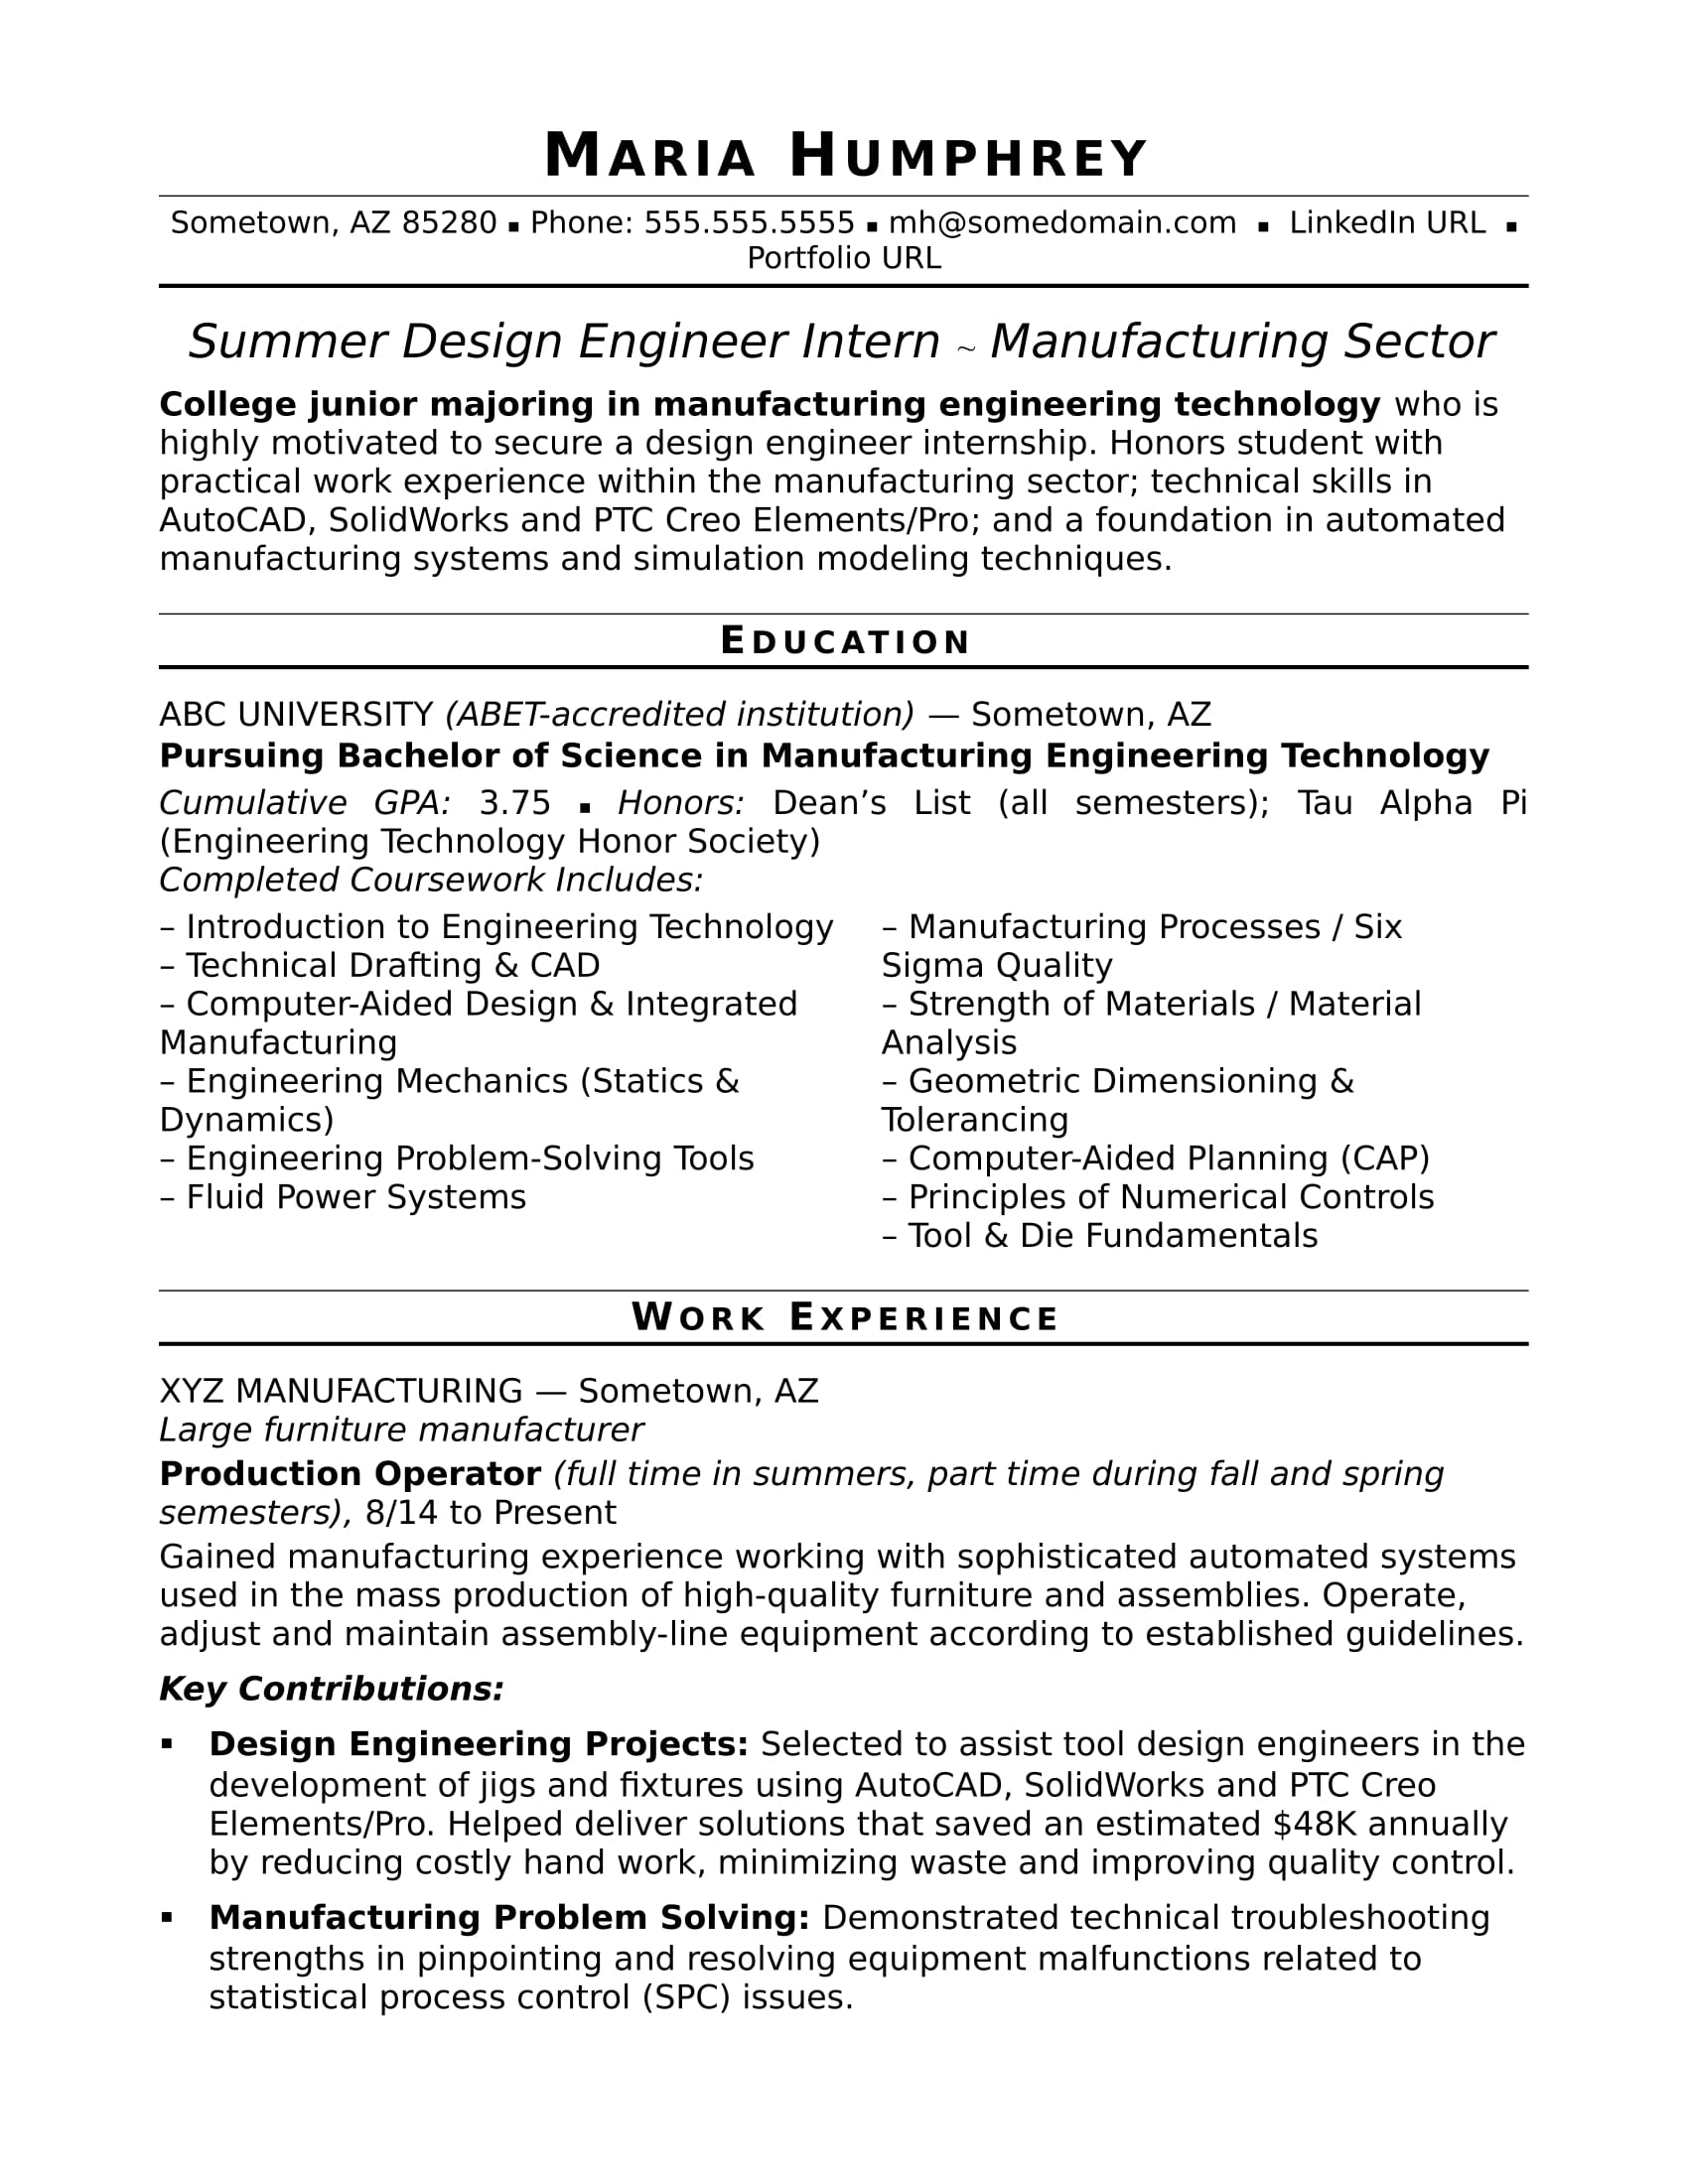 Sample Resume for an Entry-Level Design Engineer